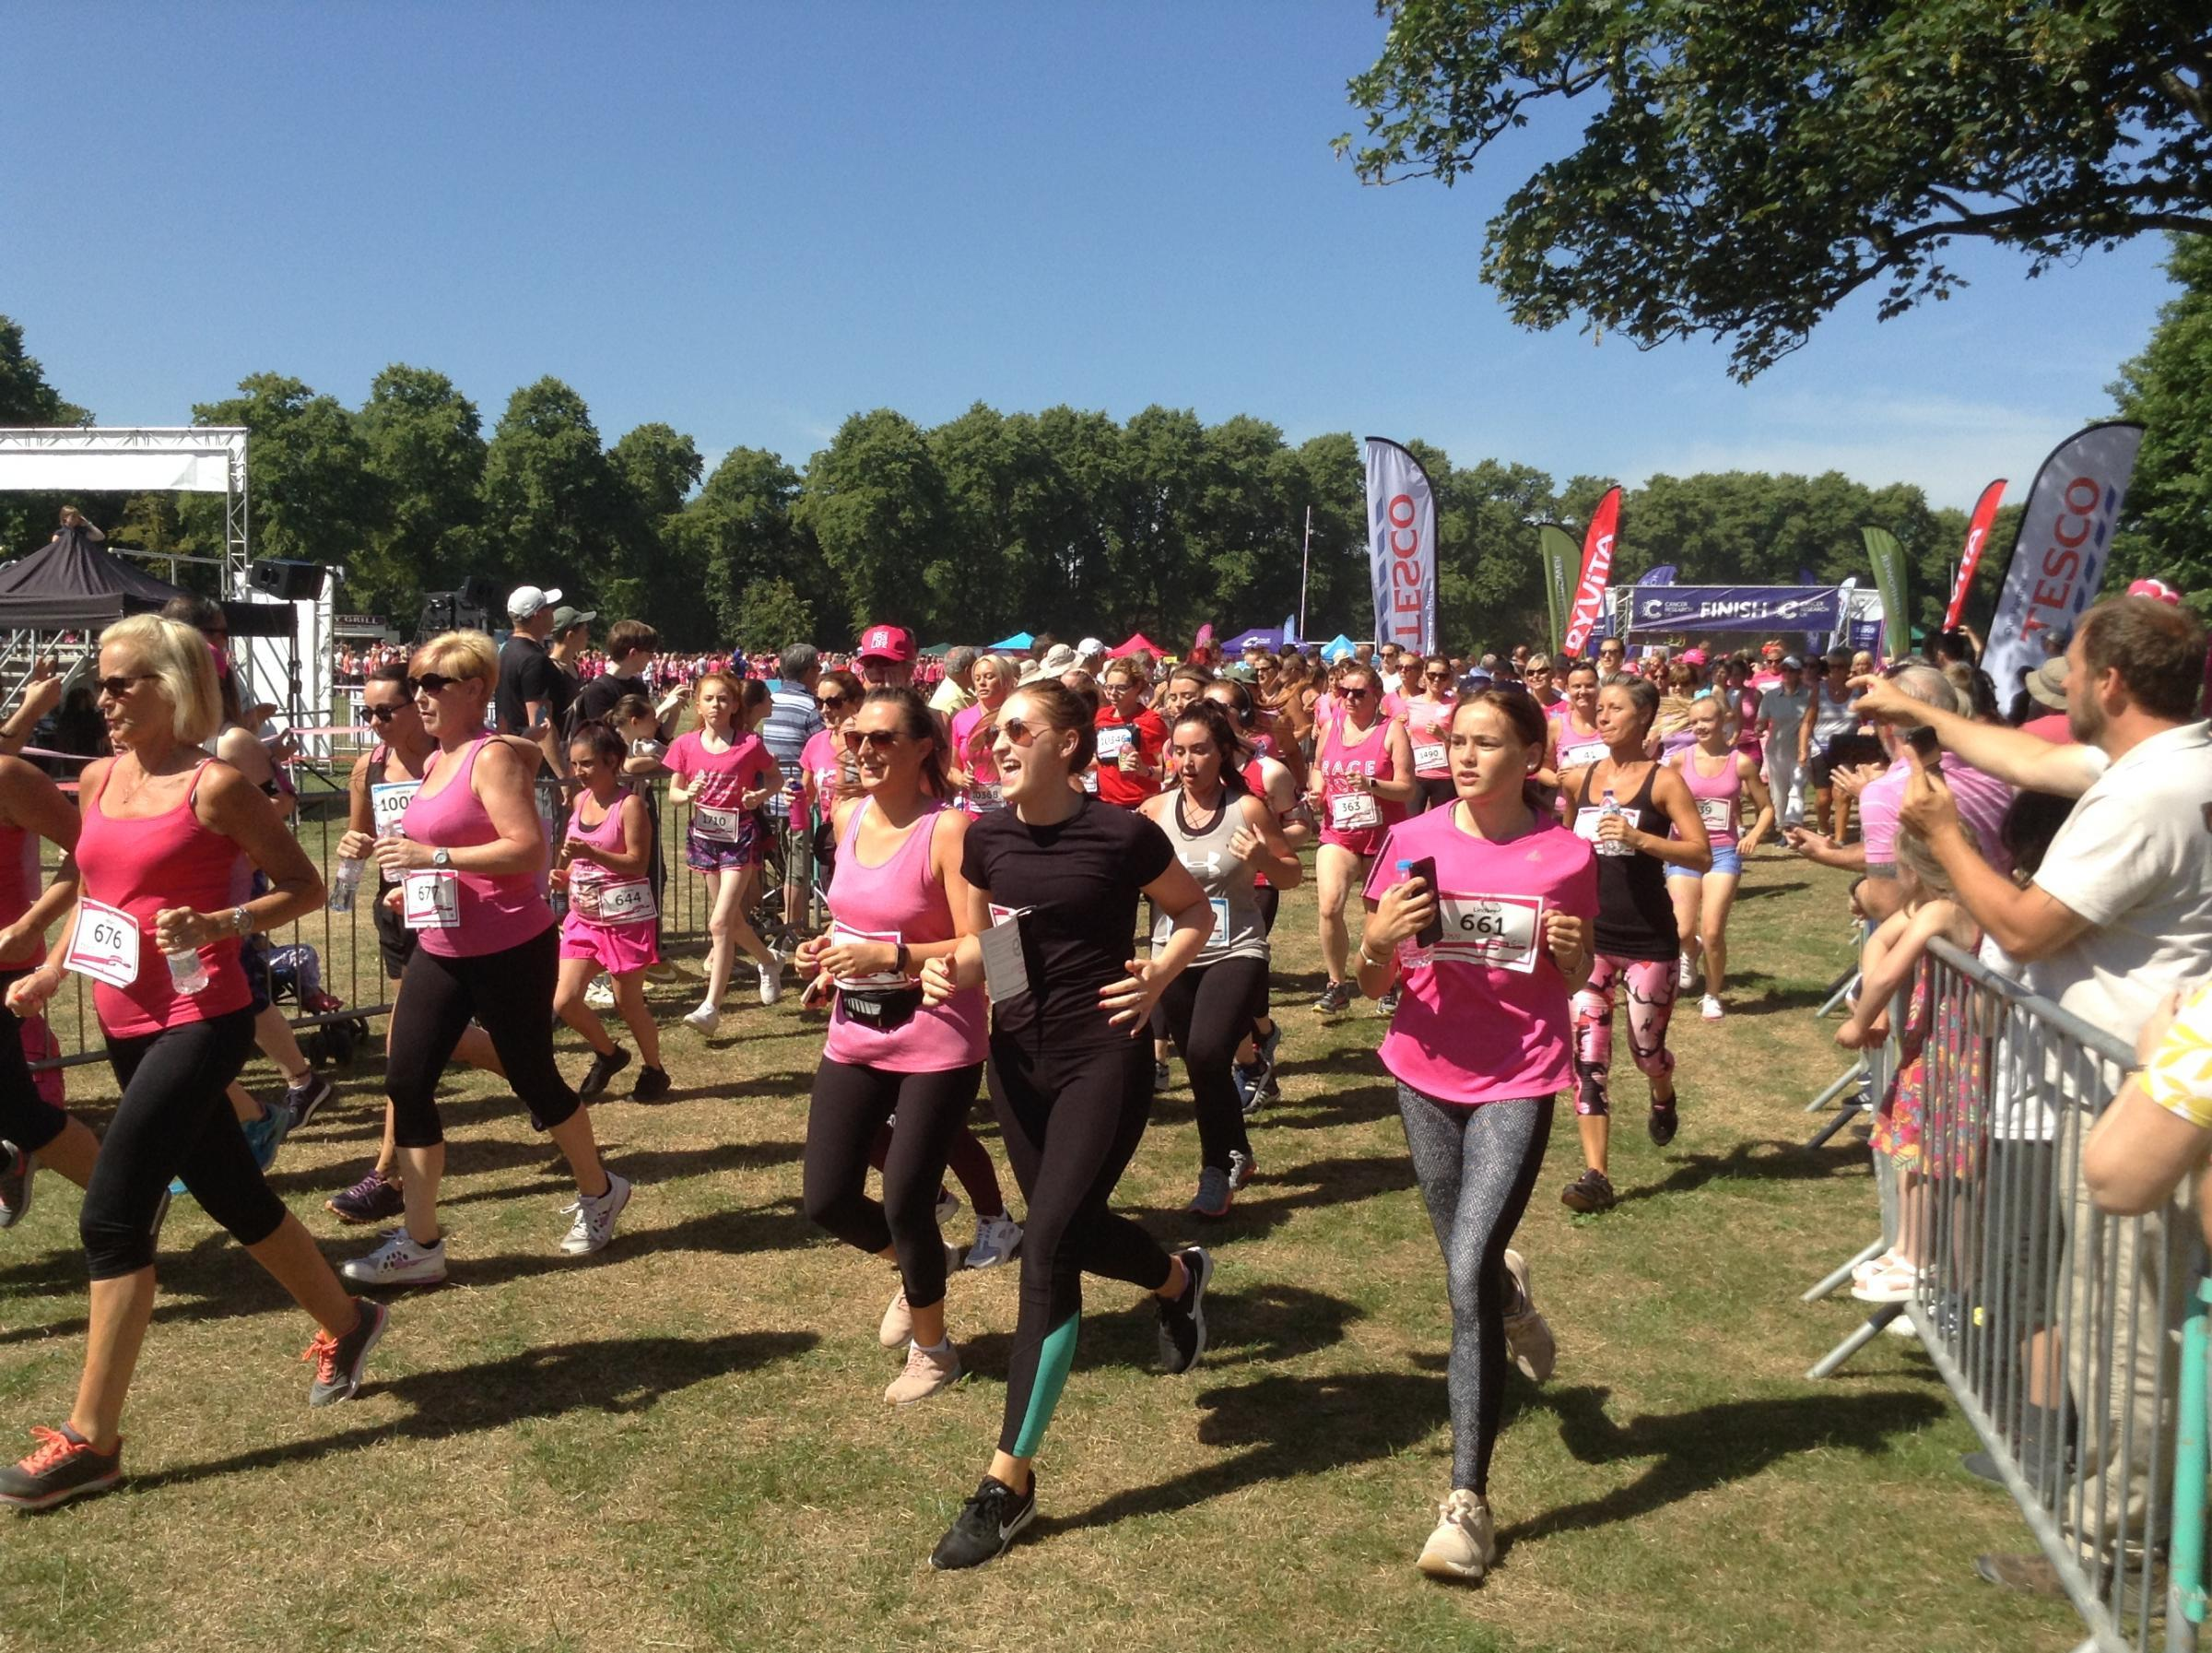 Setting off at start of last year's Race For Life in Birkenhead Park. Picture by Craig Manning